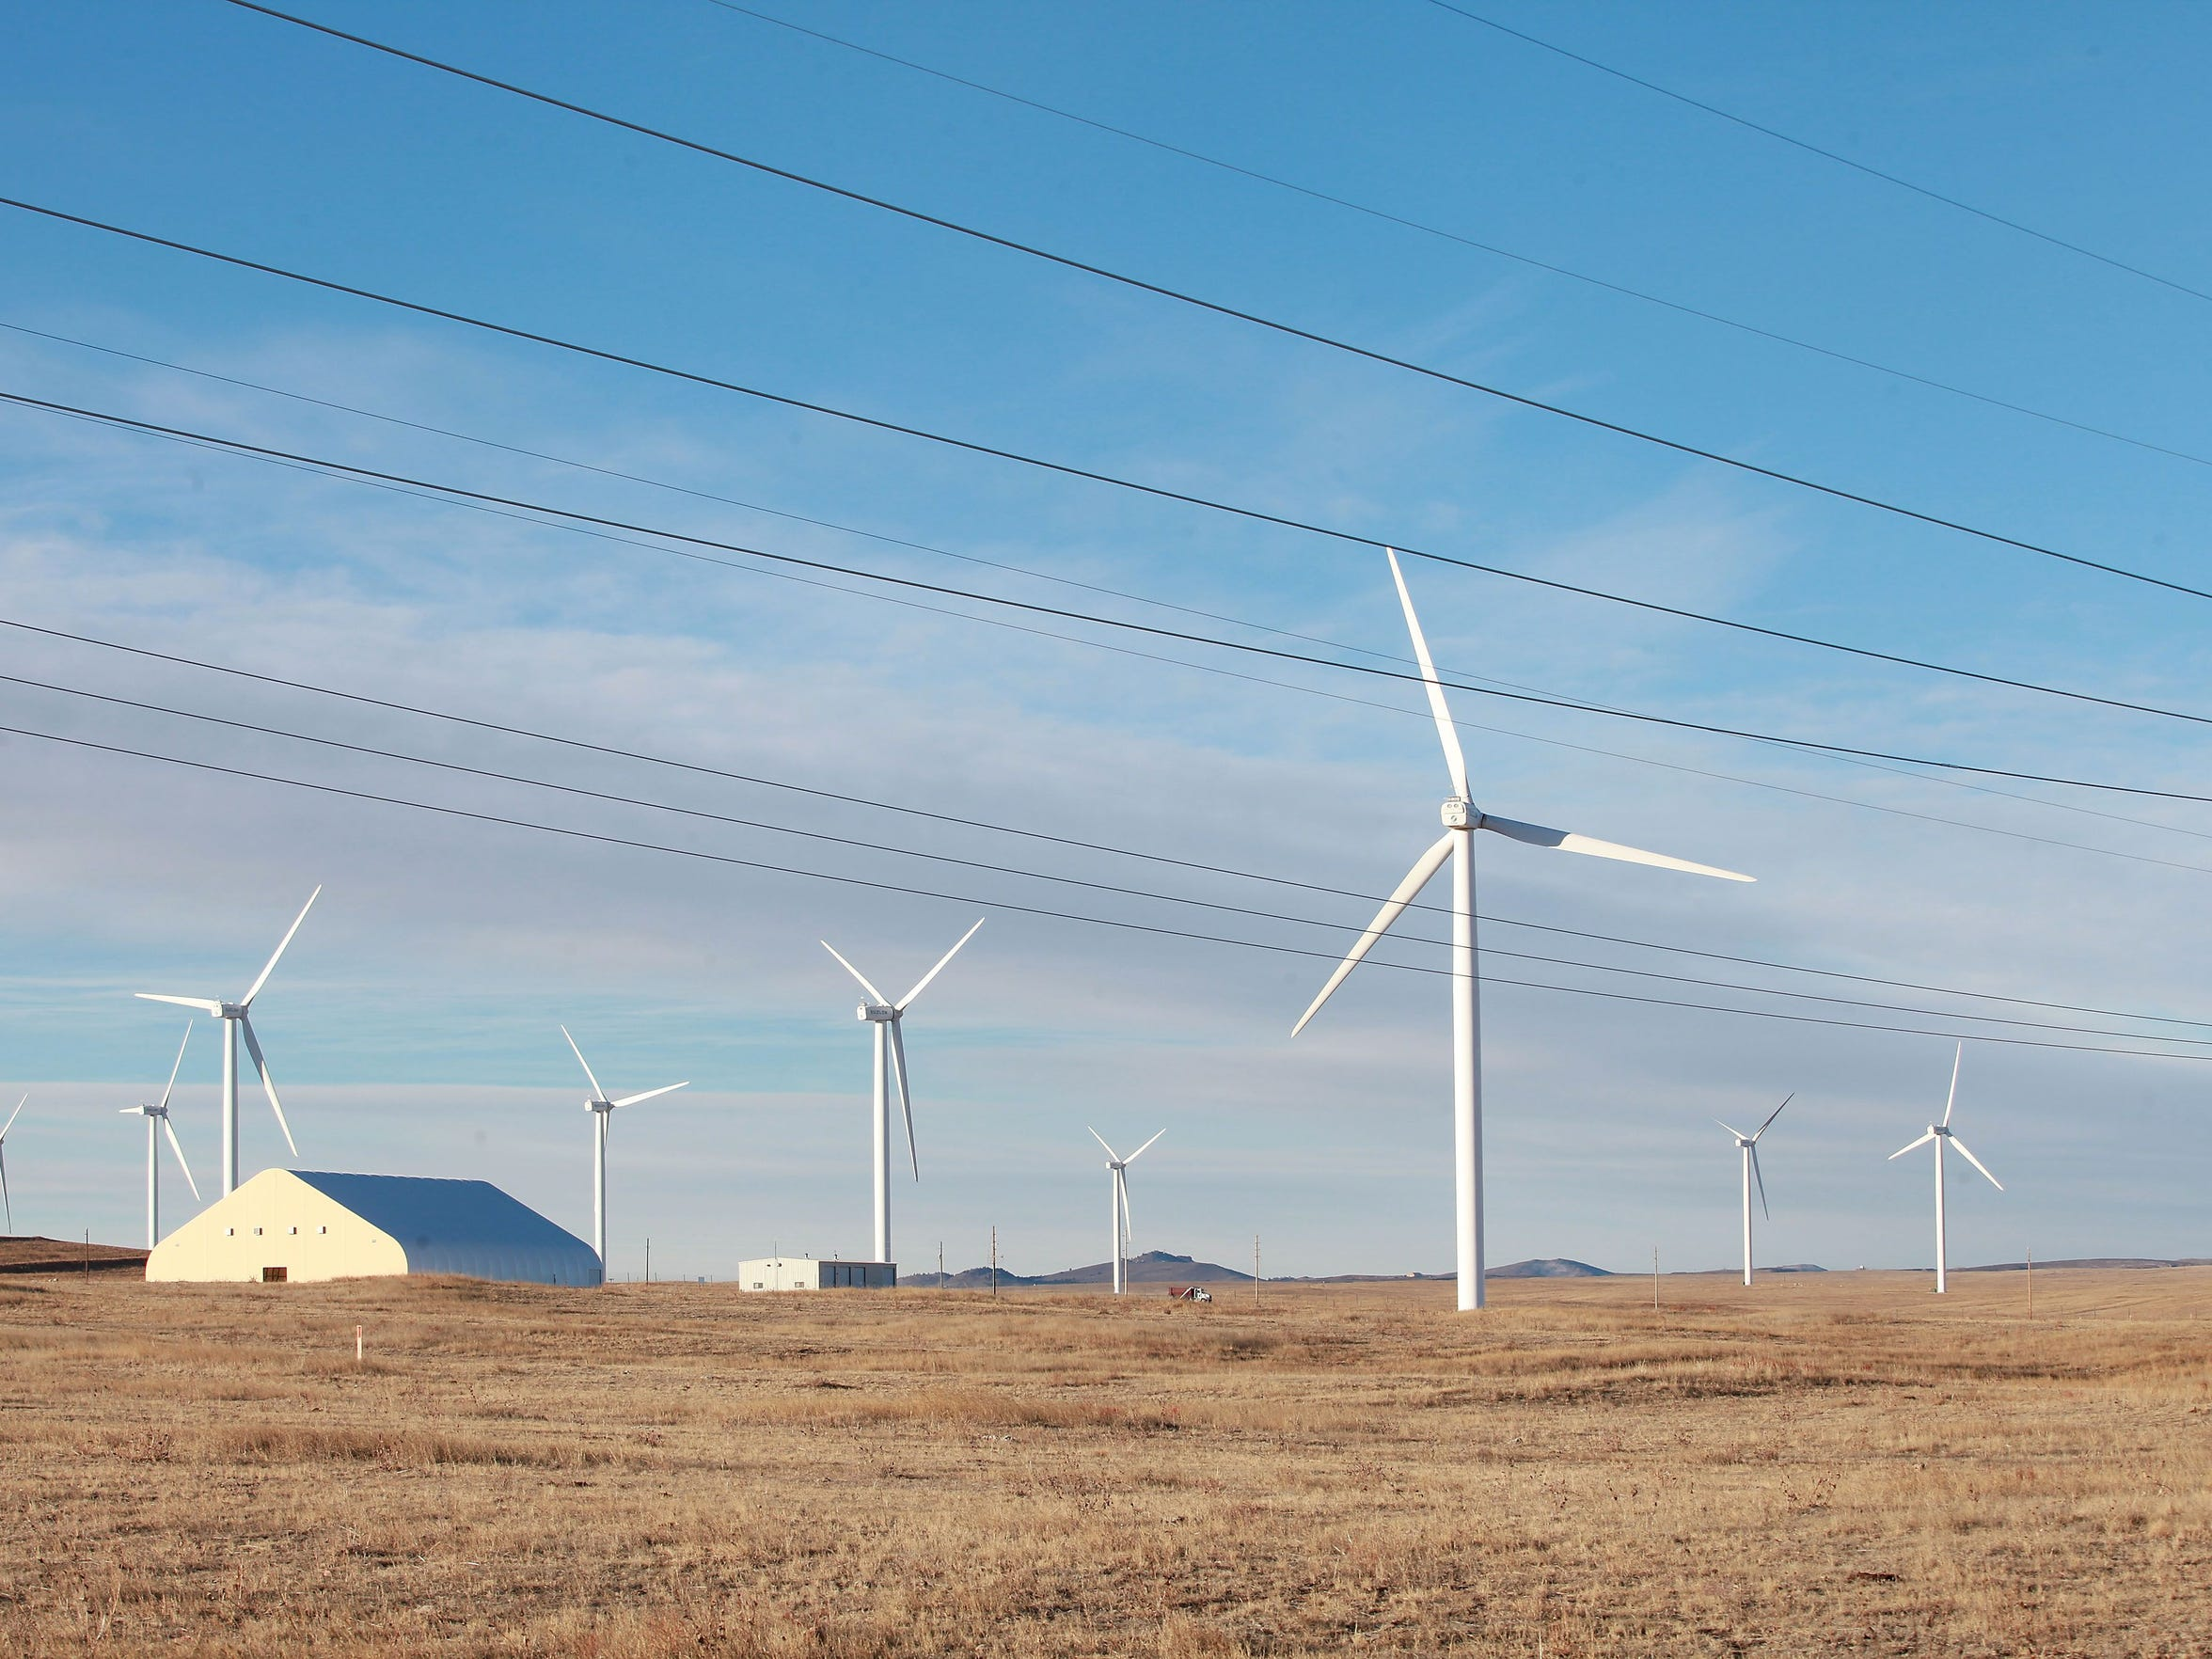 Duke Energy's Happy Jack wind farm near Cheyenne, Wyoming